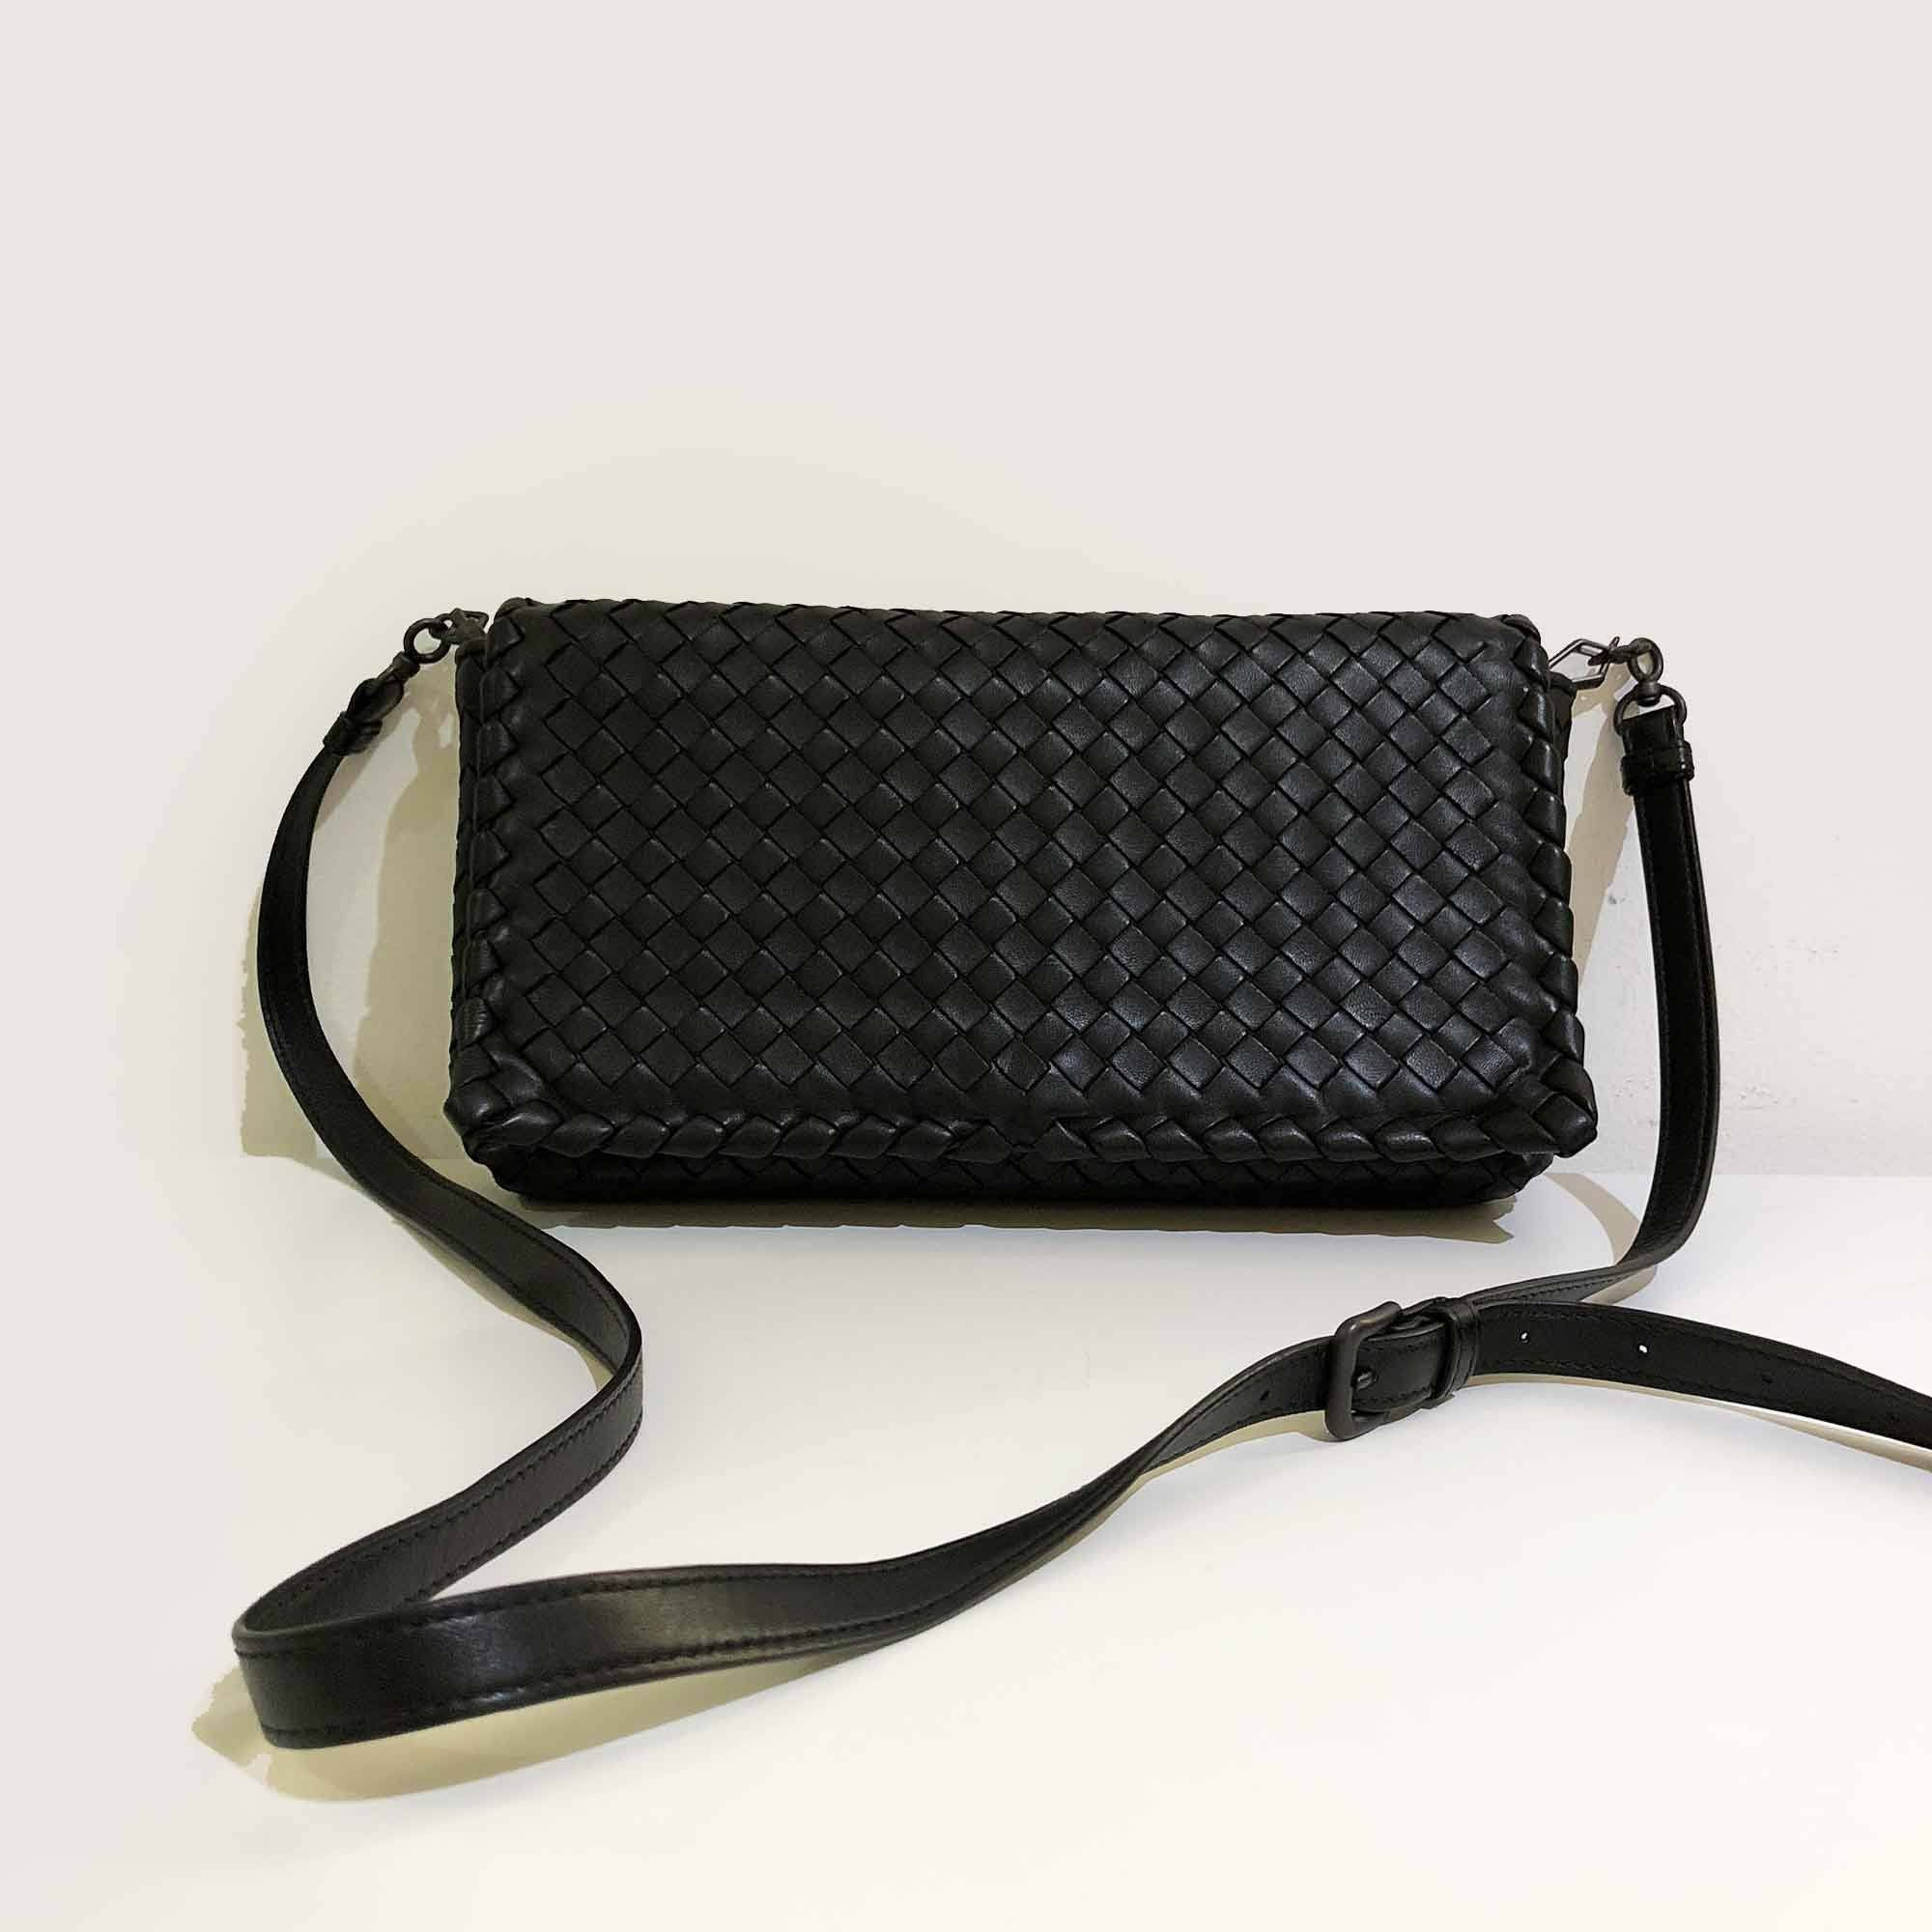 Bottega Veneta Intrecciato Leather Flap Crossbody Bag